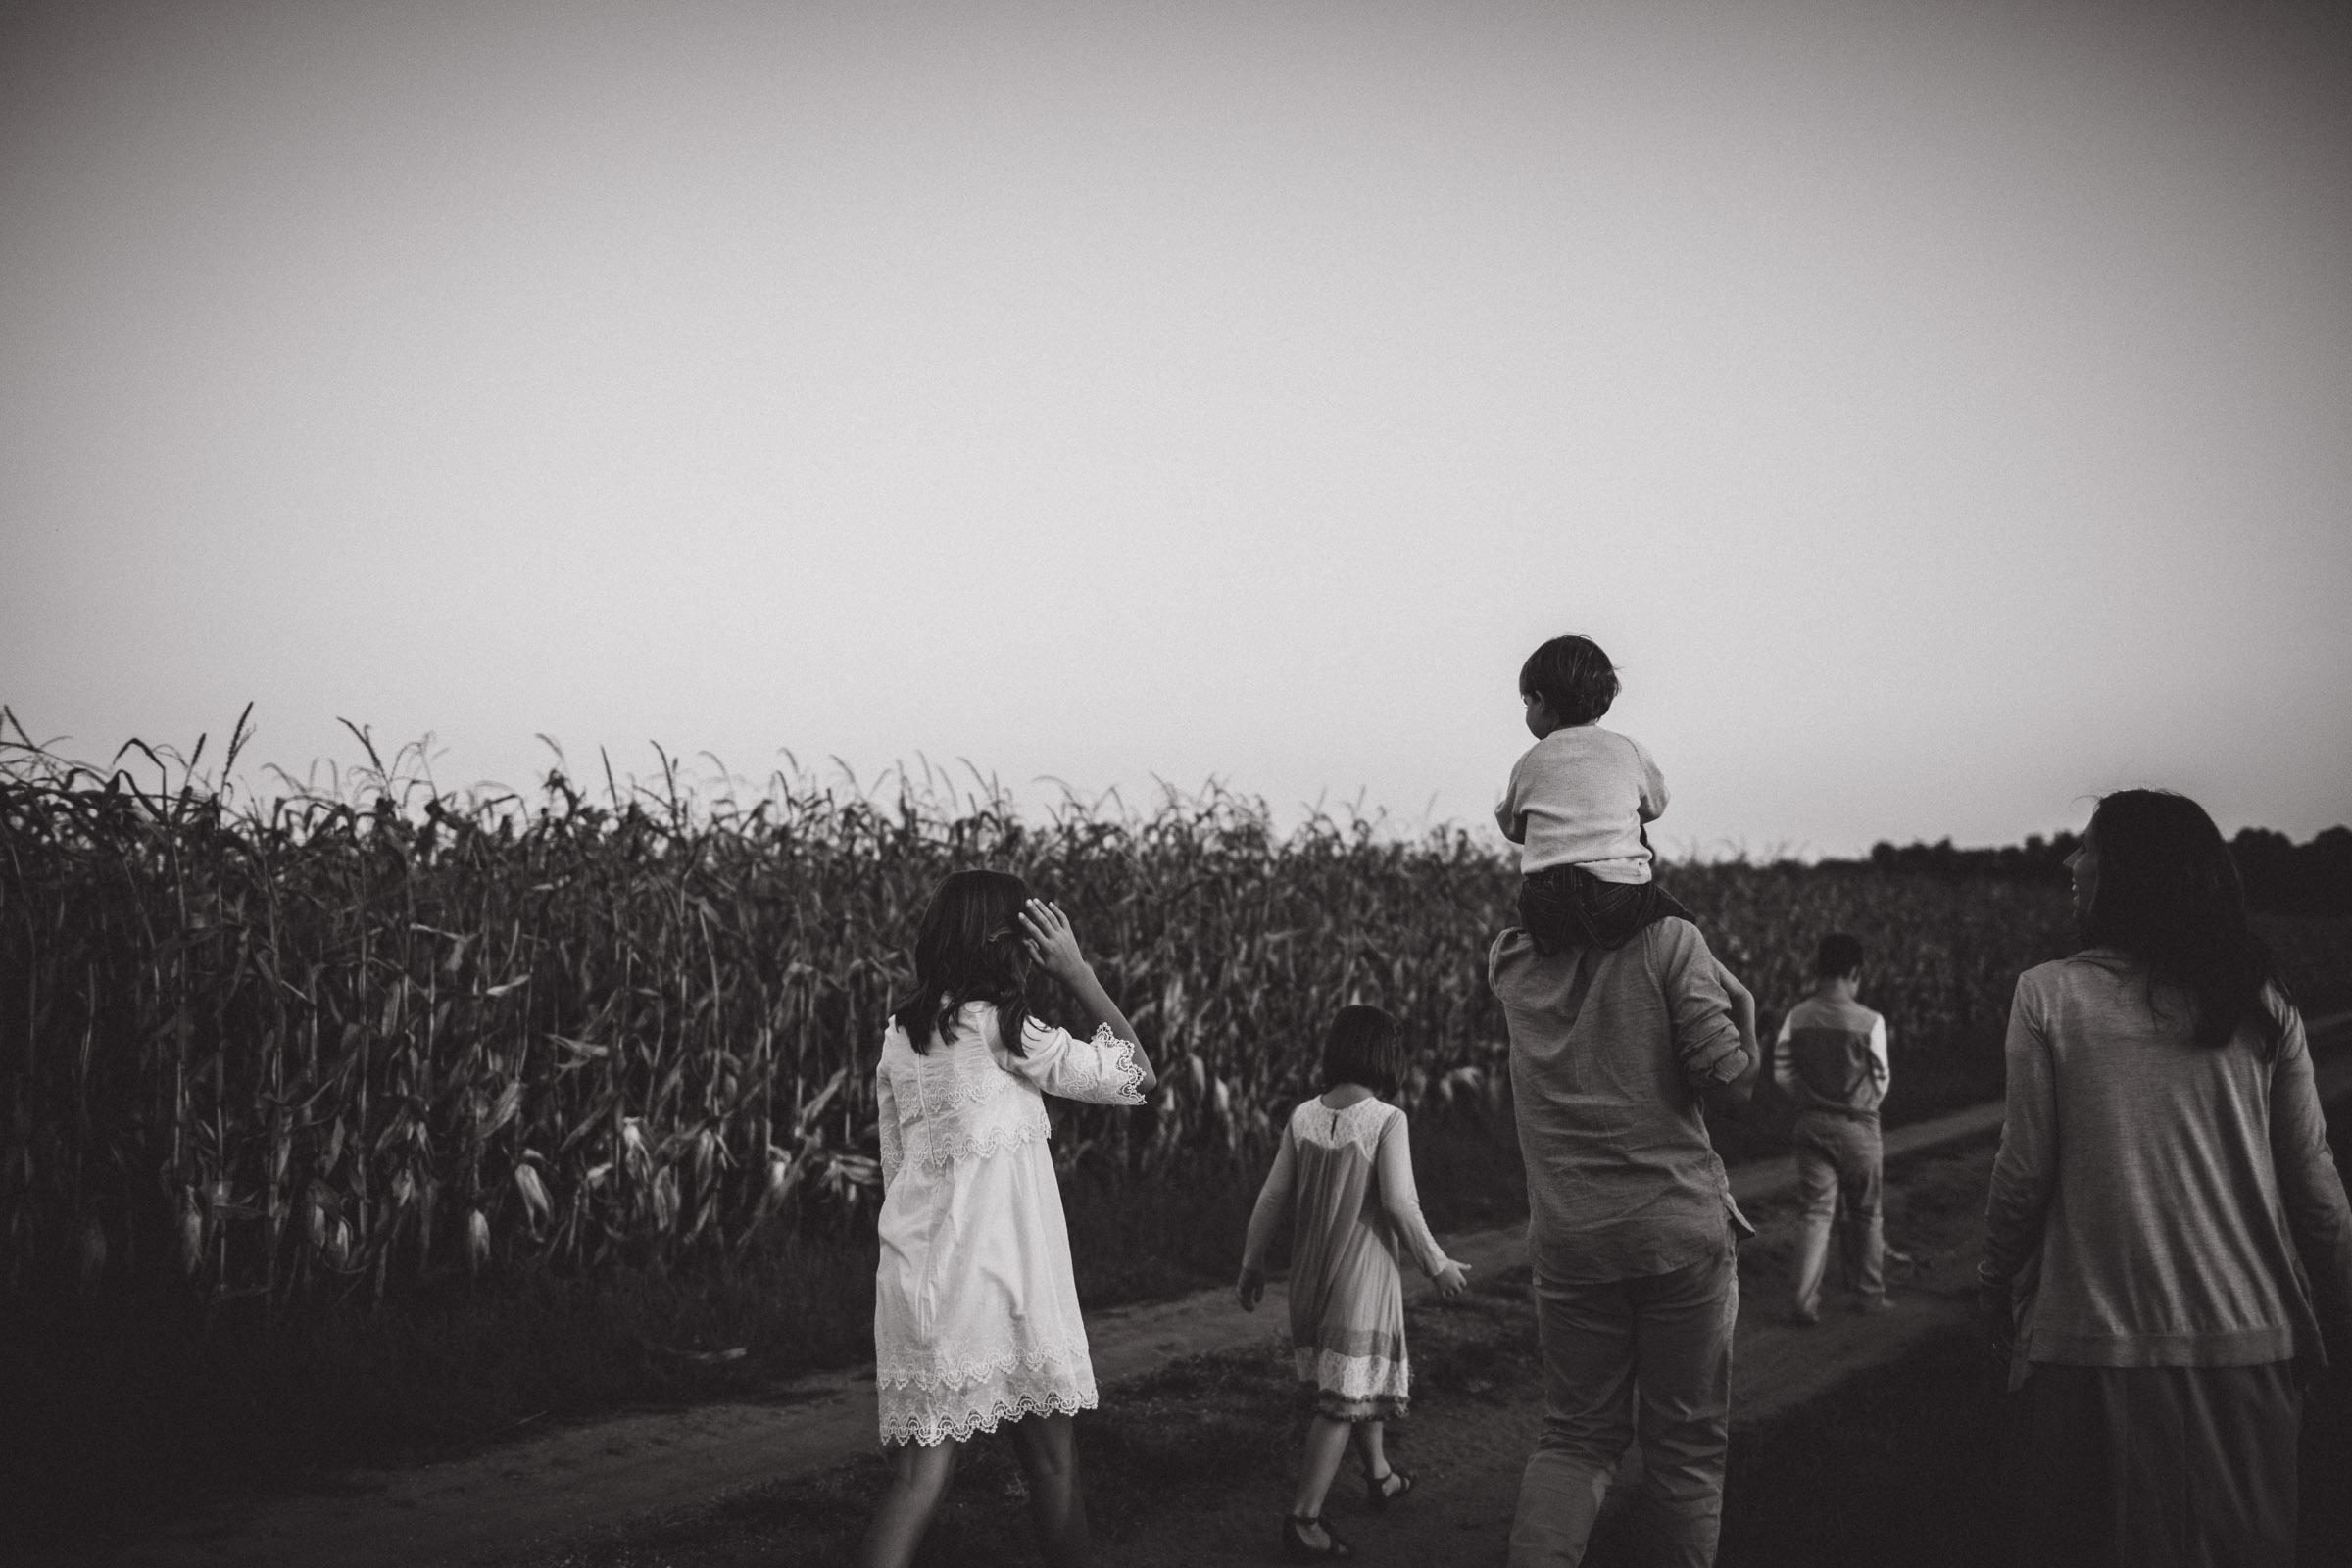 family walking together along cornfields